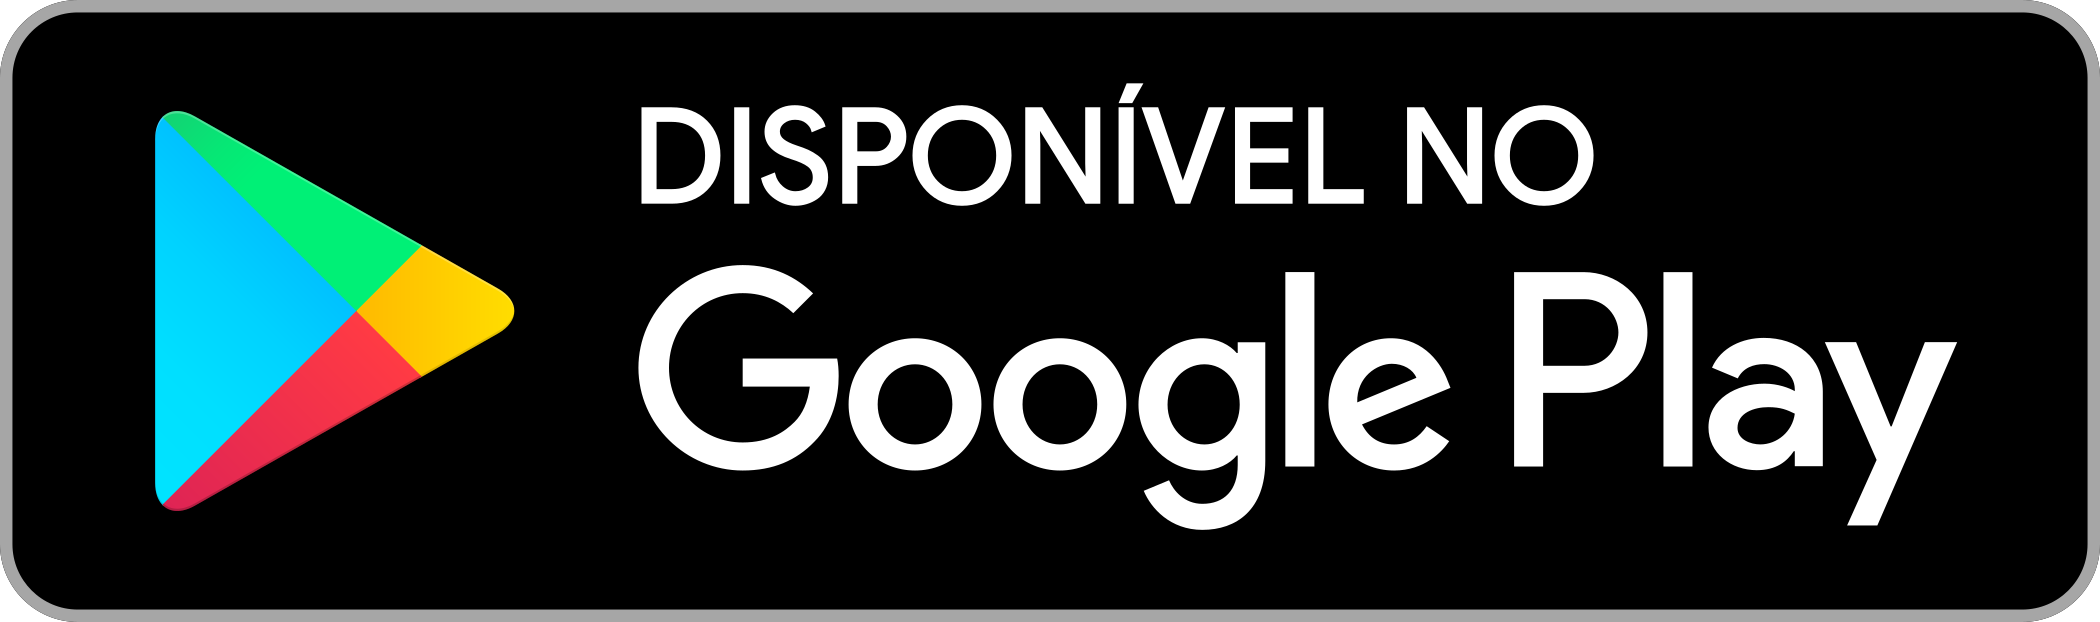 disponivel-google-play-badge-1